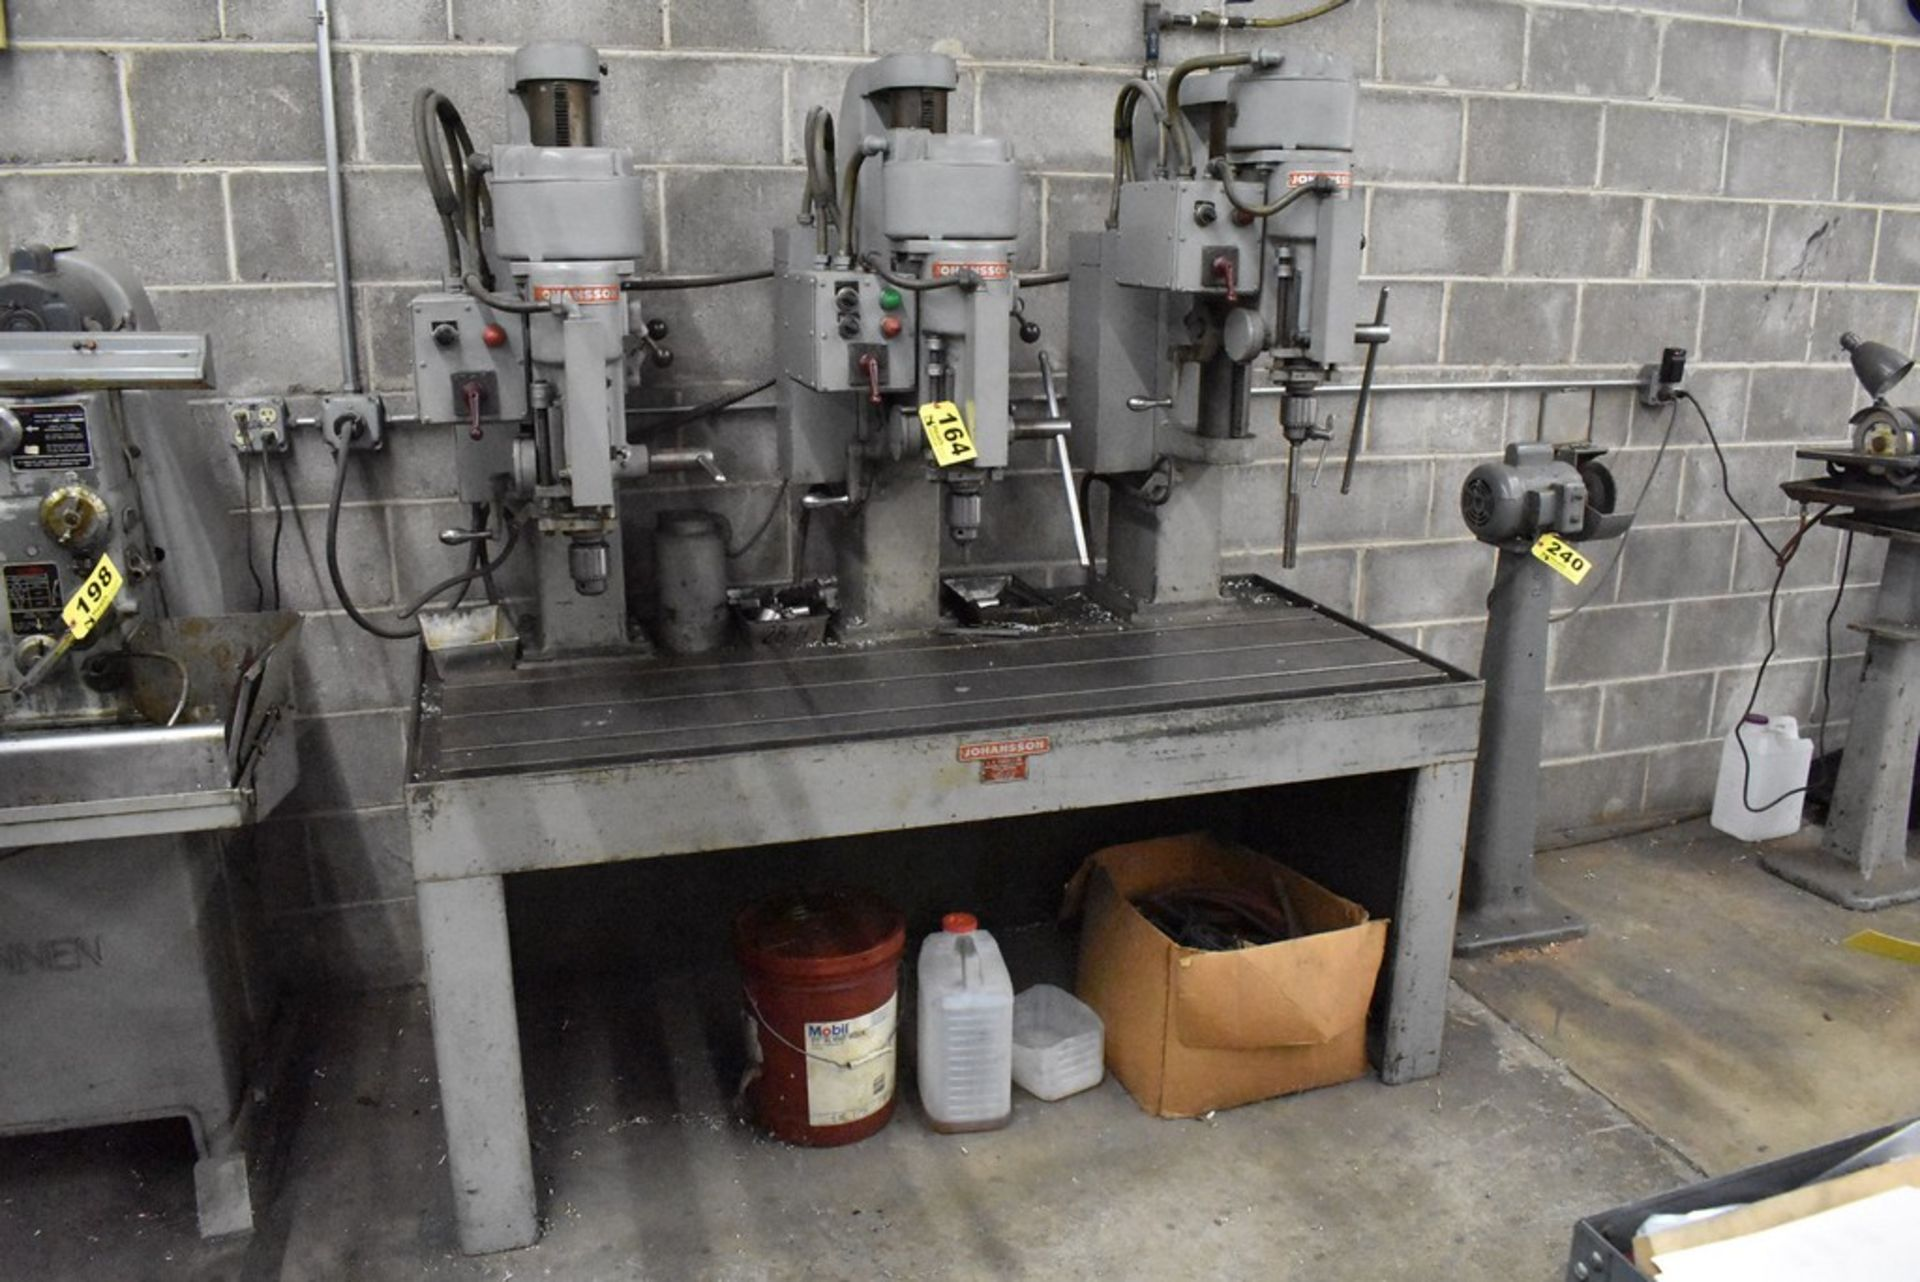 """JOHANNSEN 30"""" 3 SPINDLE DRILL, S/N 11800,11801, &11802, UP TO 1520 RPM SPINDLE, MOUNTED ON 20""""X68"""" - Image 2 of 6"""